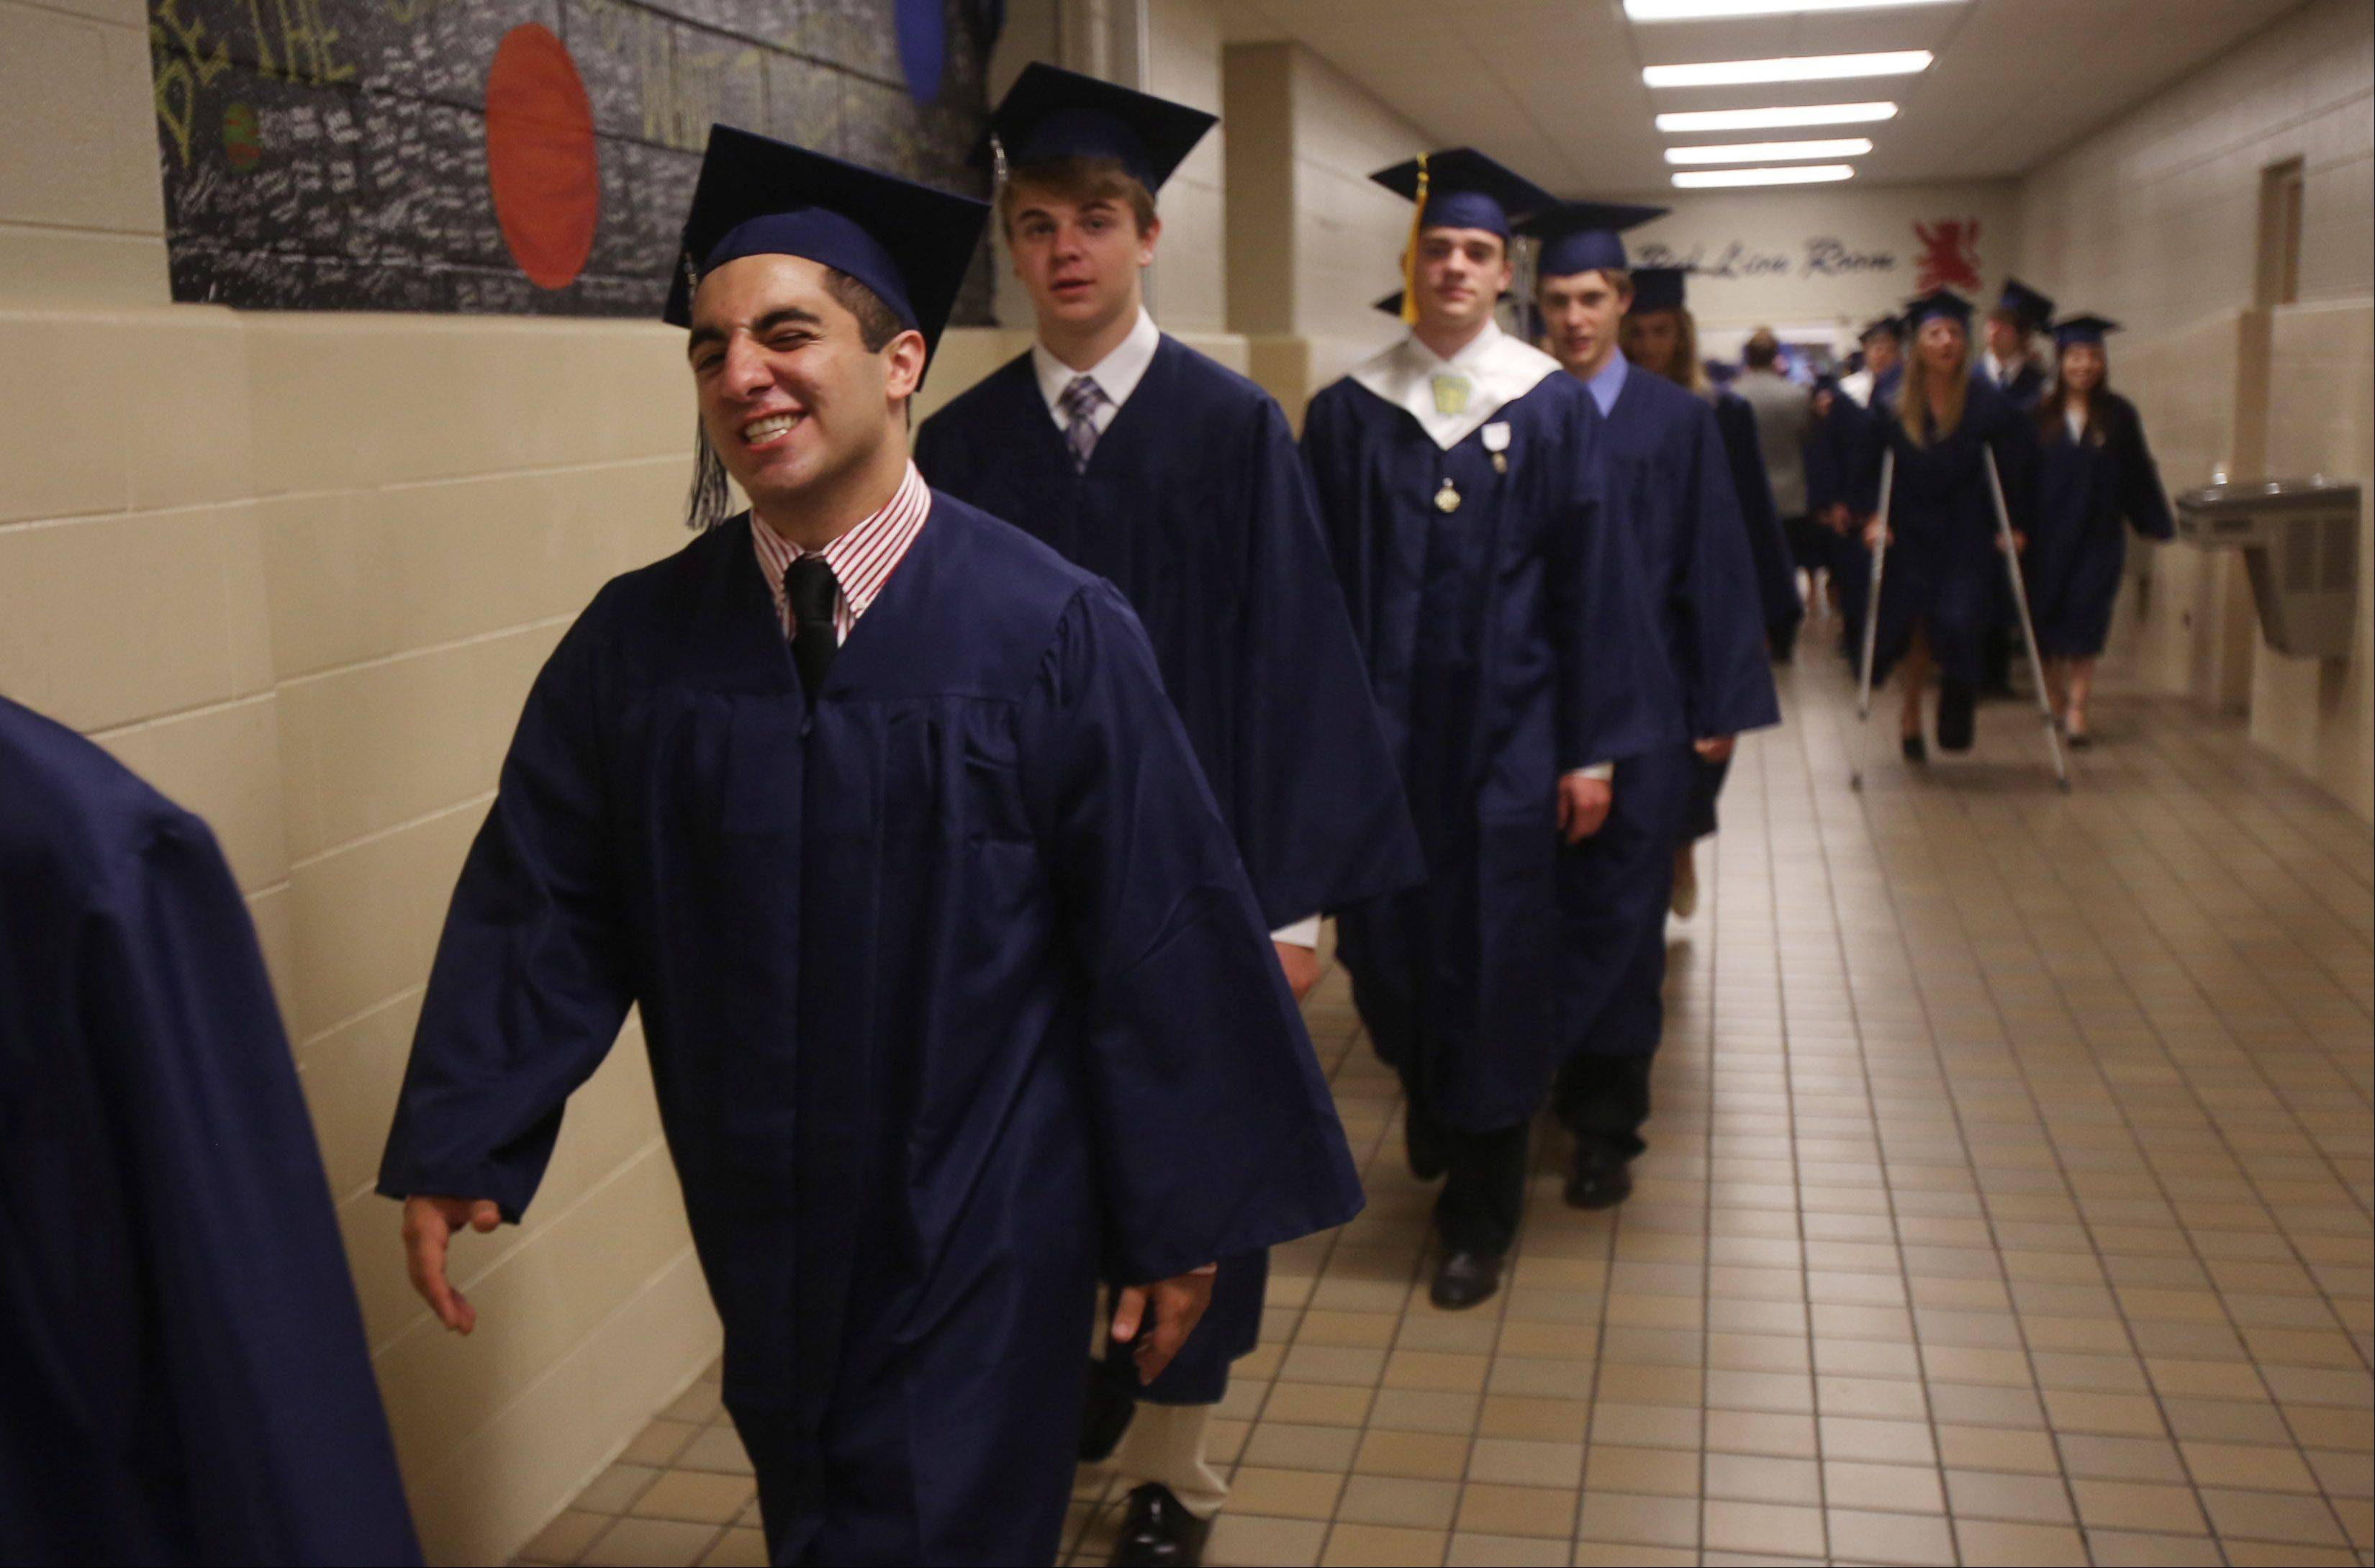 Images from the St. Viator High School graduation on Sunday, May 19 in Arlington Heights.